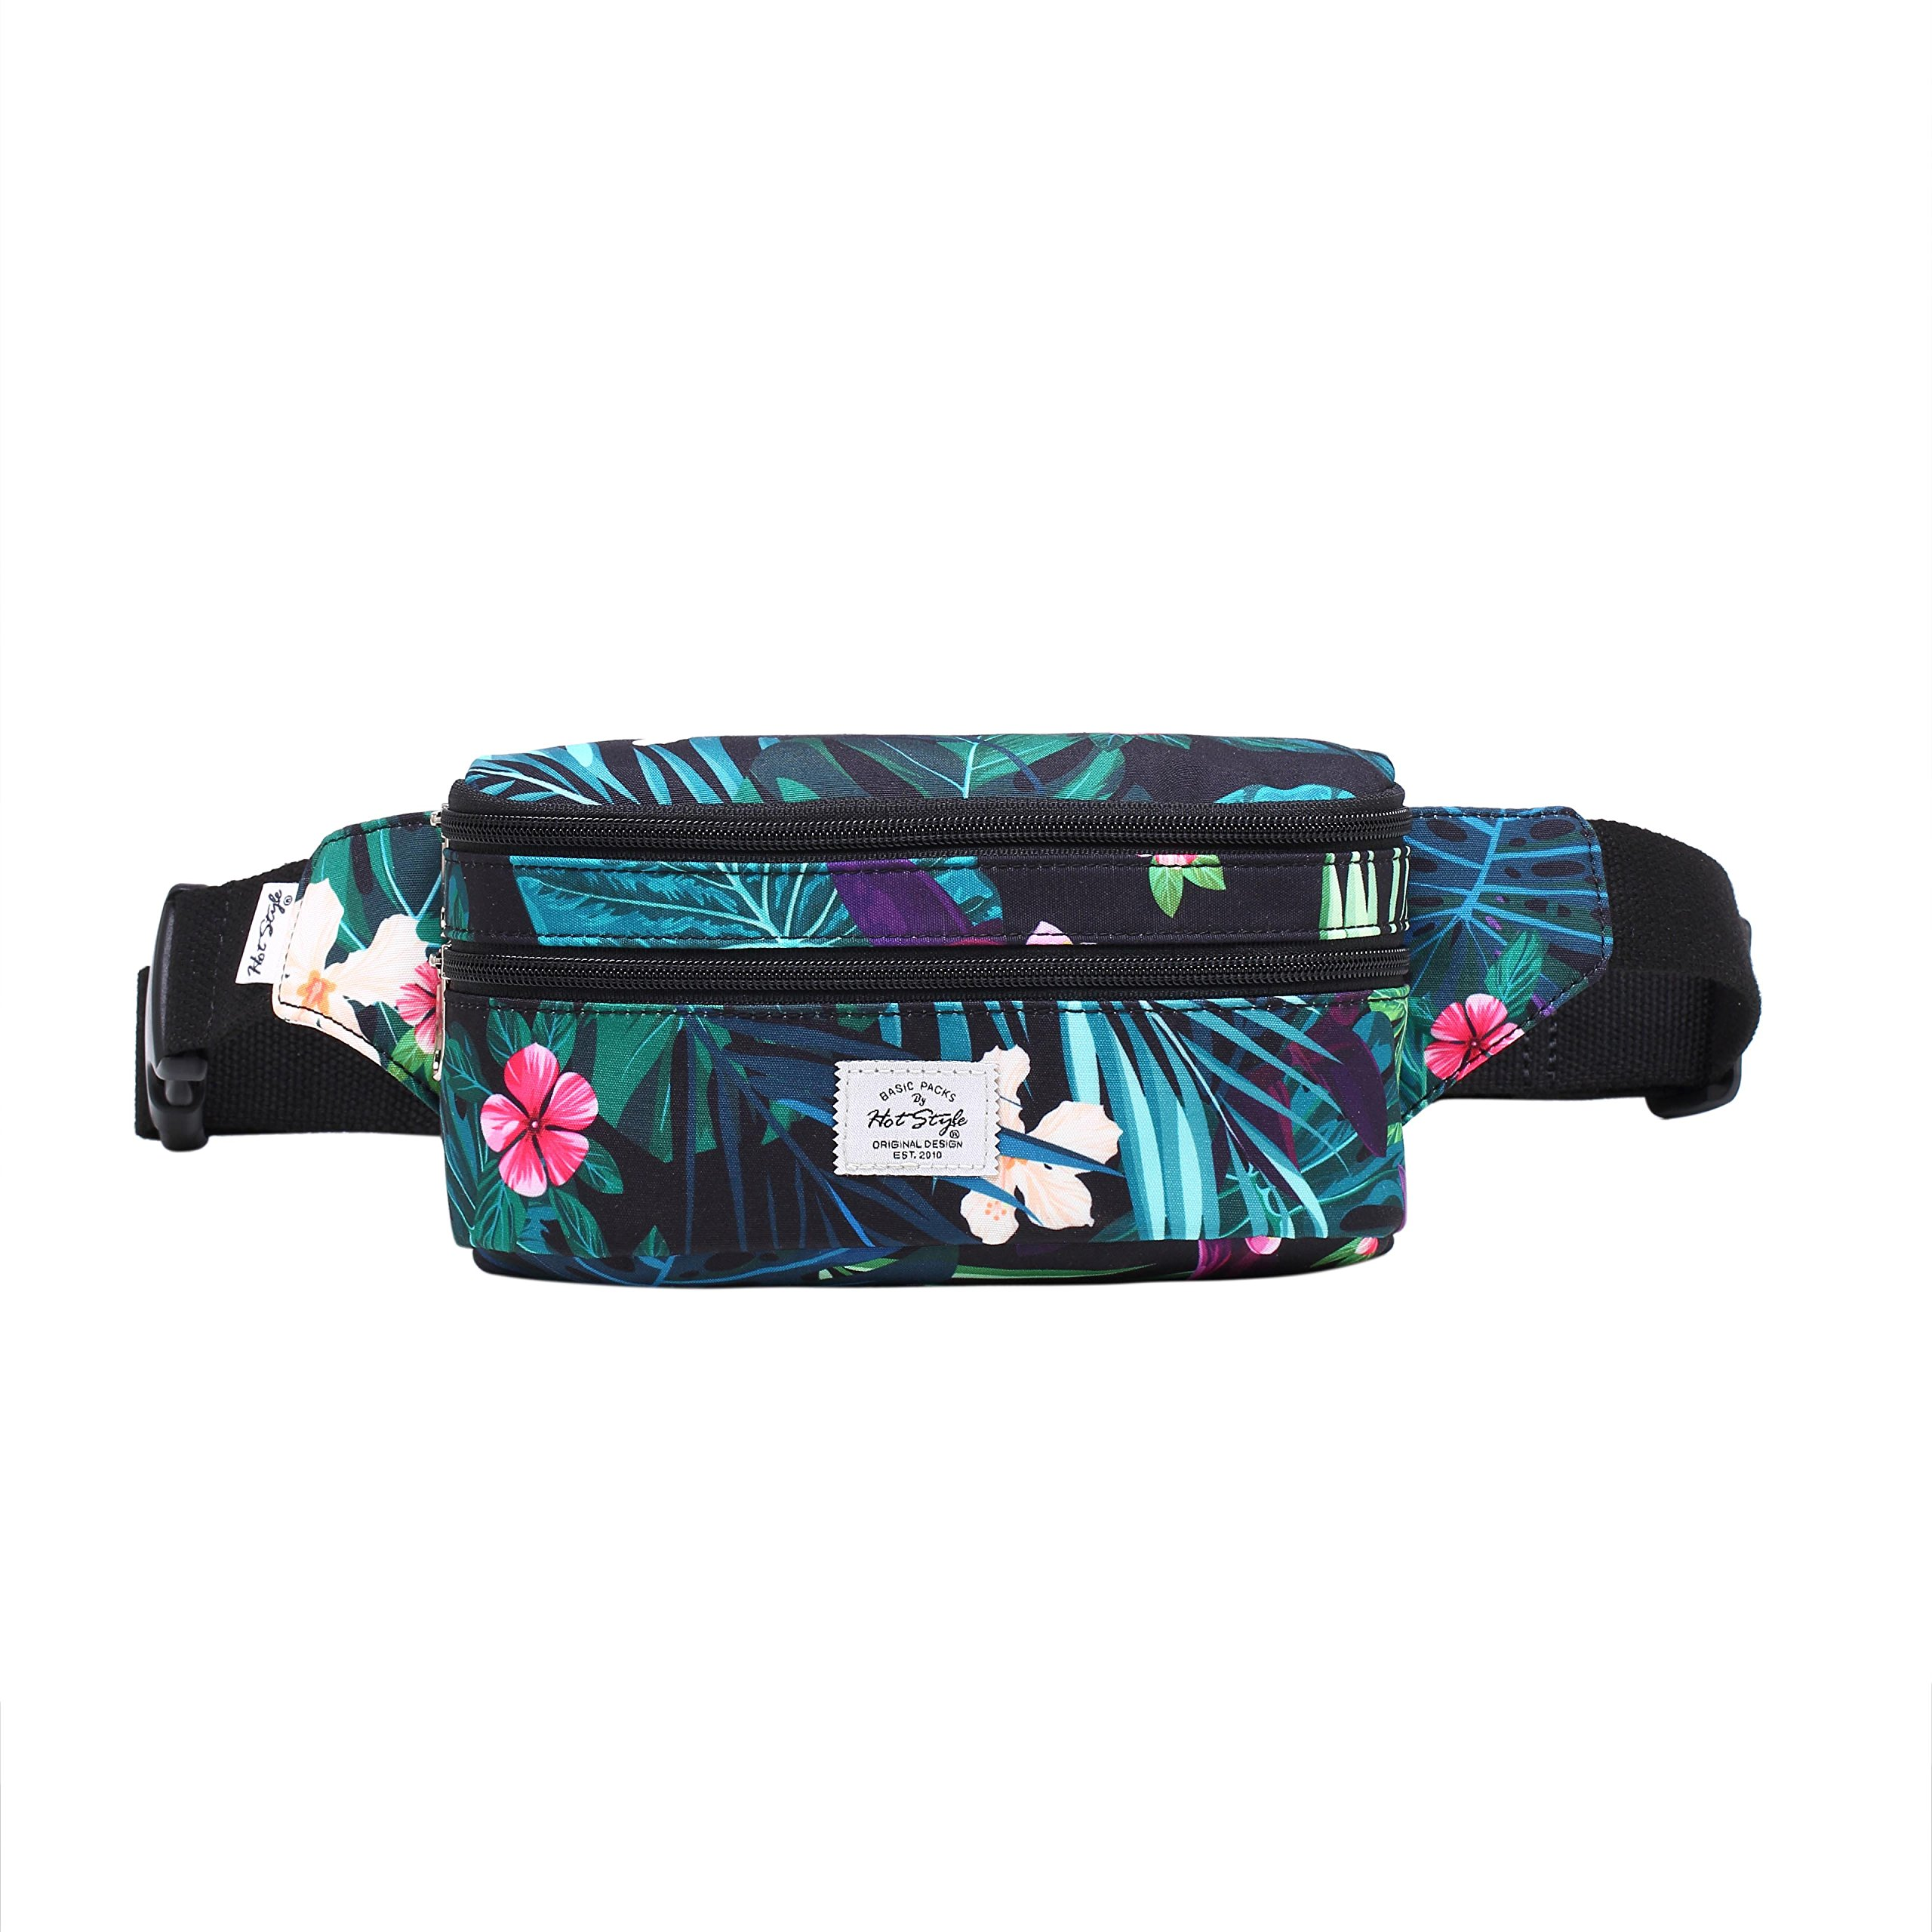 521s Fashion Waist Bag Cute Fanny Pack | 8.0''x2.5''x4.3'' | Amazon Jungles by hotstyle